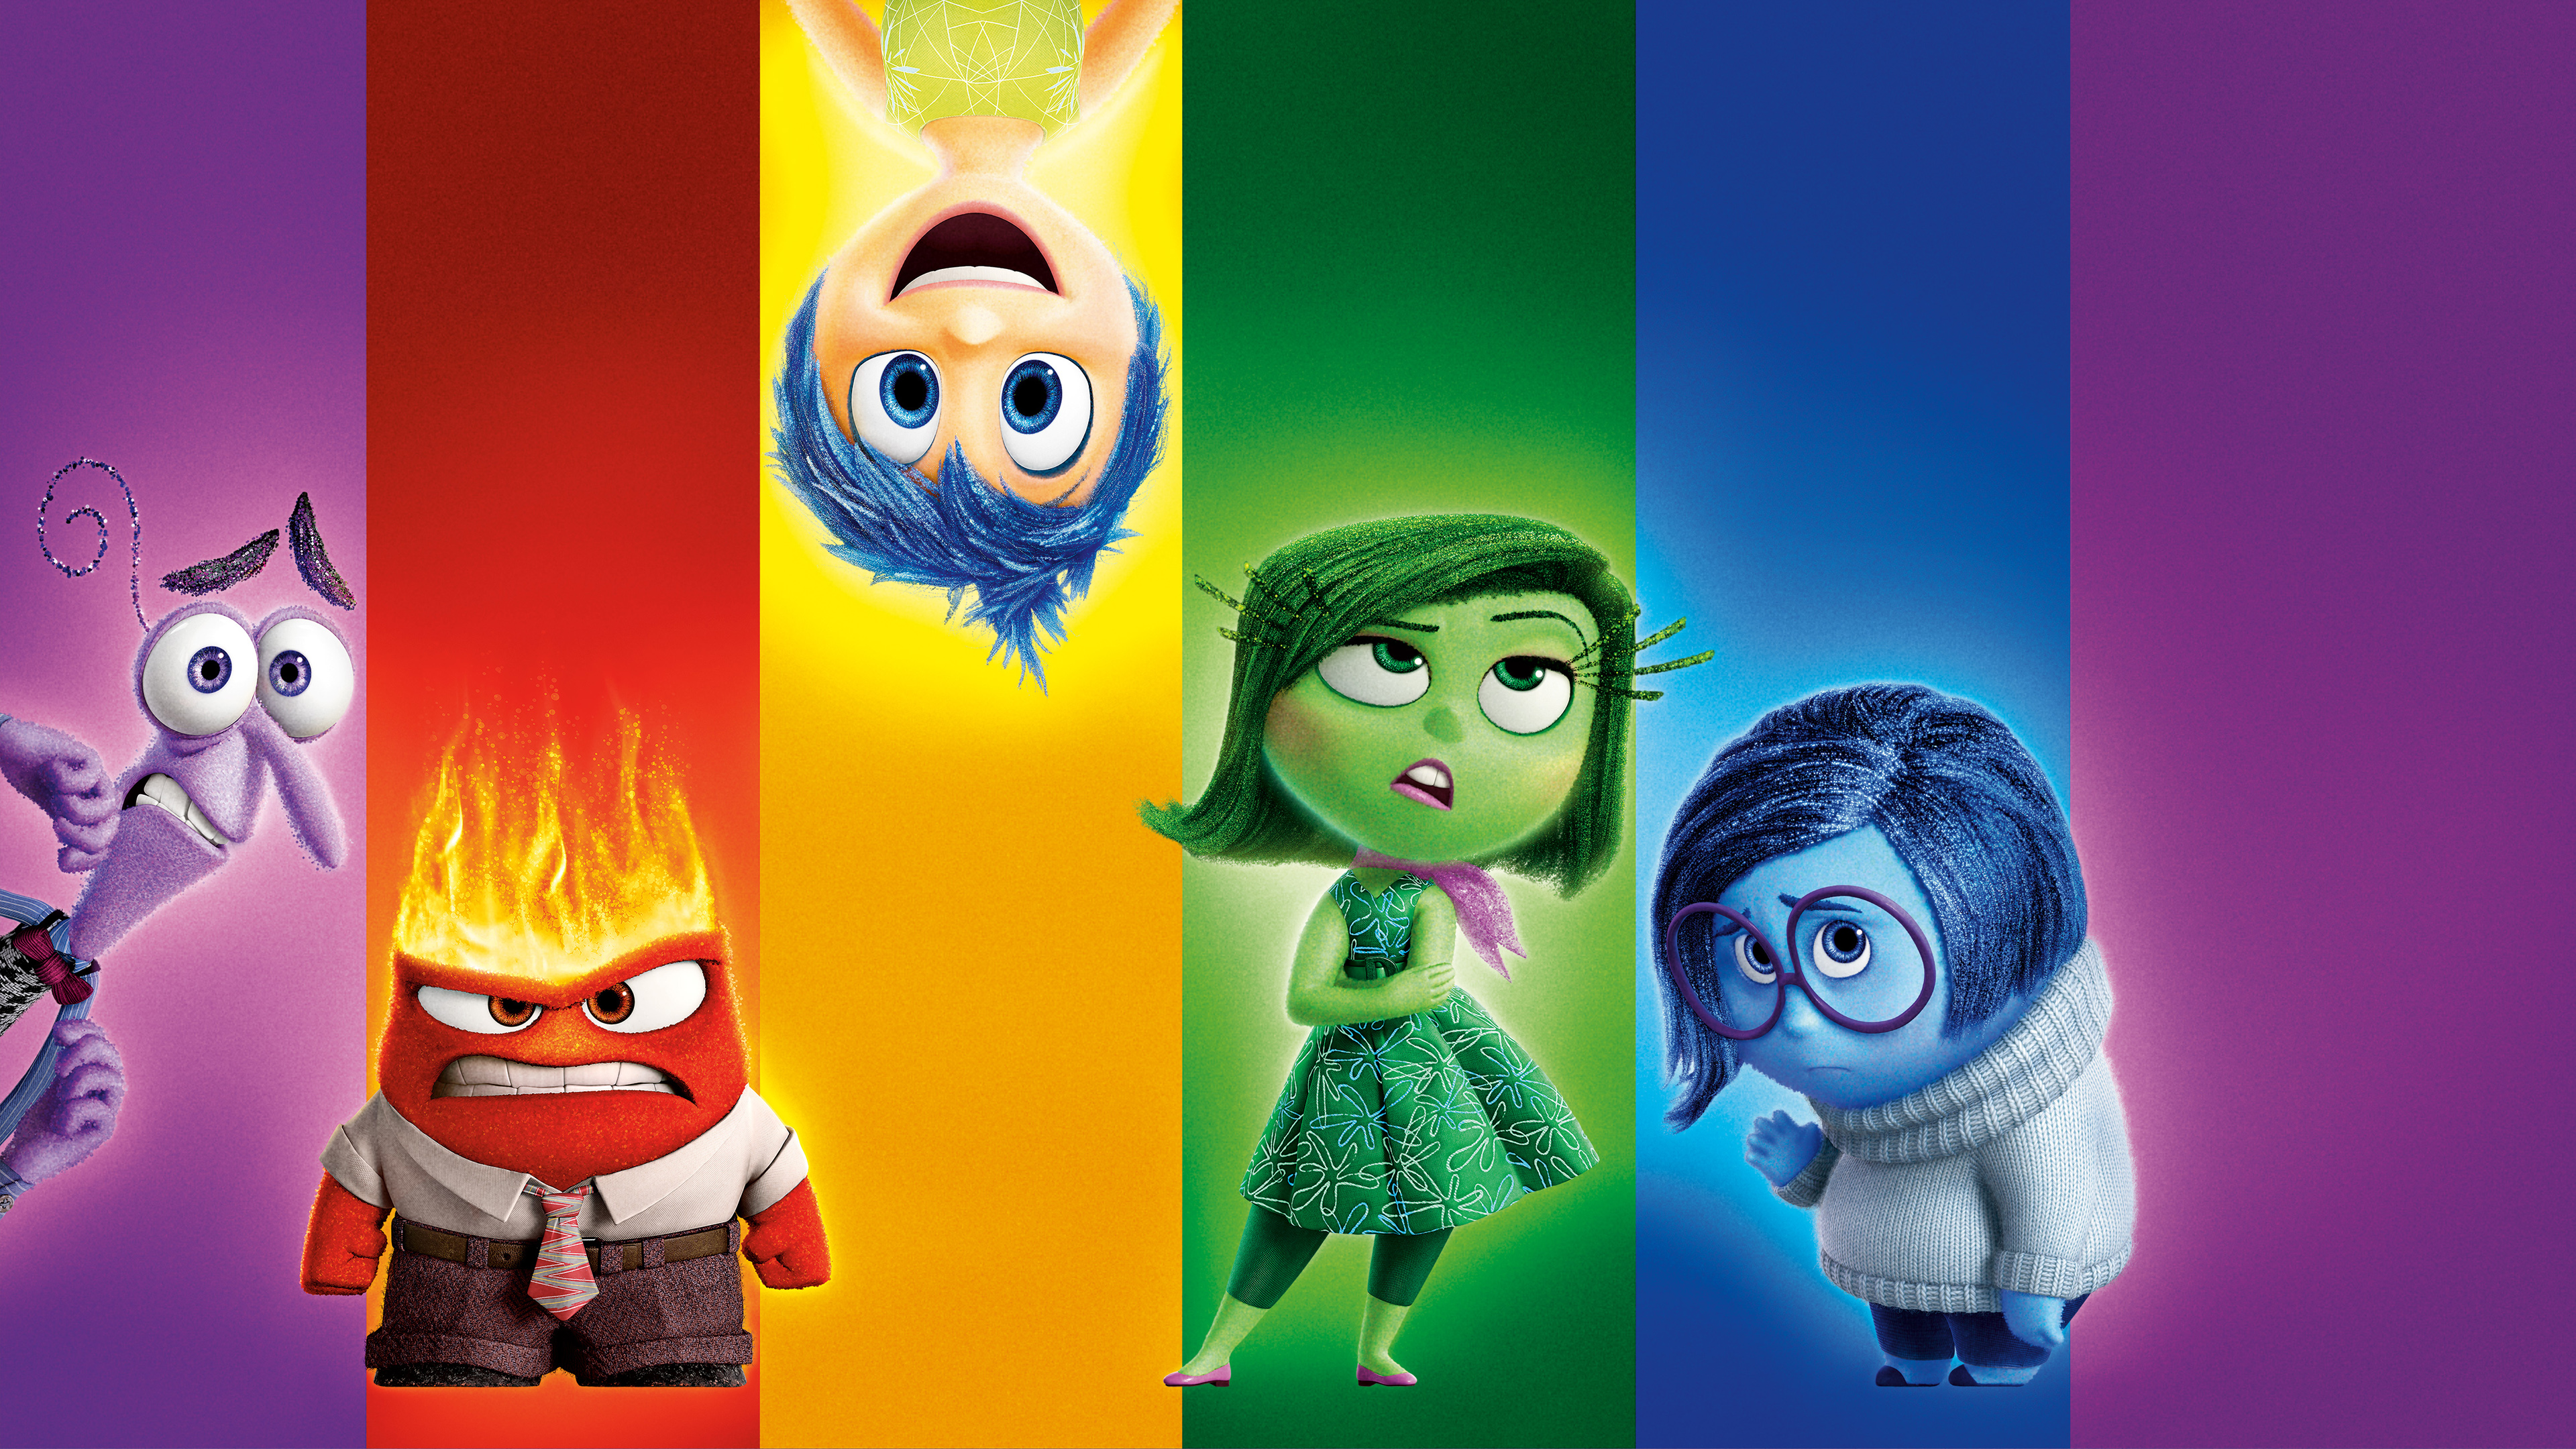 Inside out movie wallpaper wallpapersafari for Inside movie